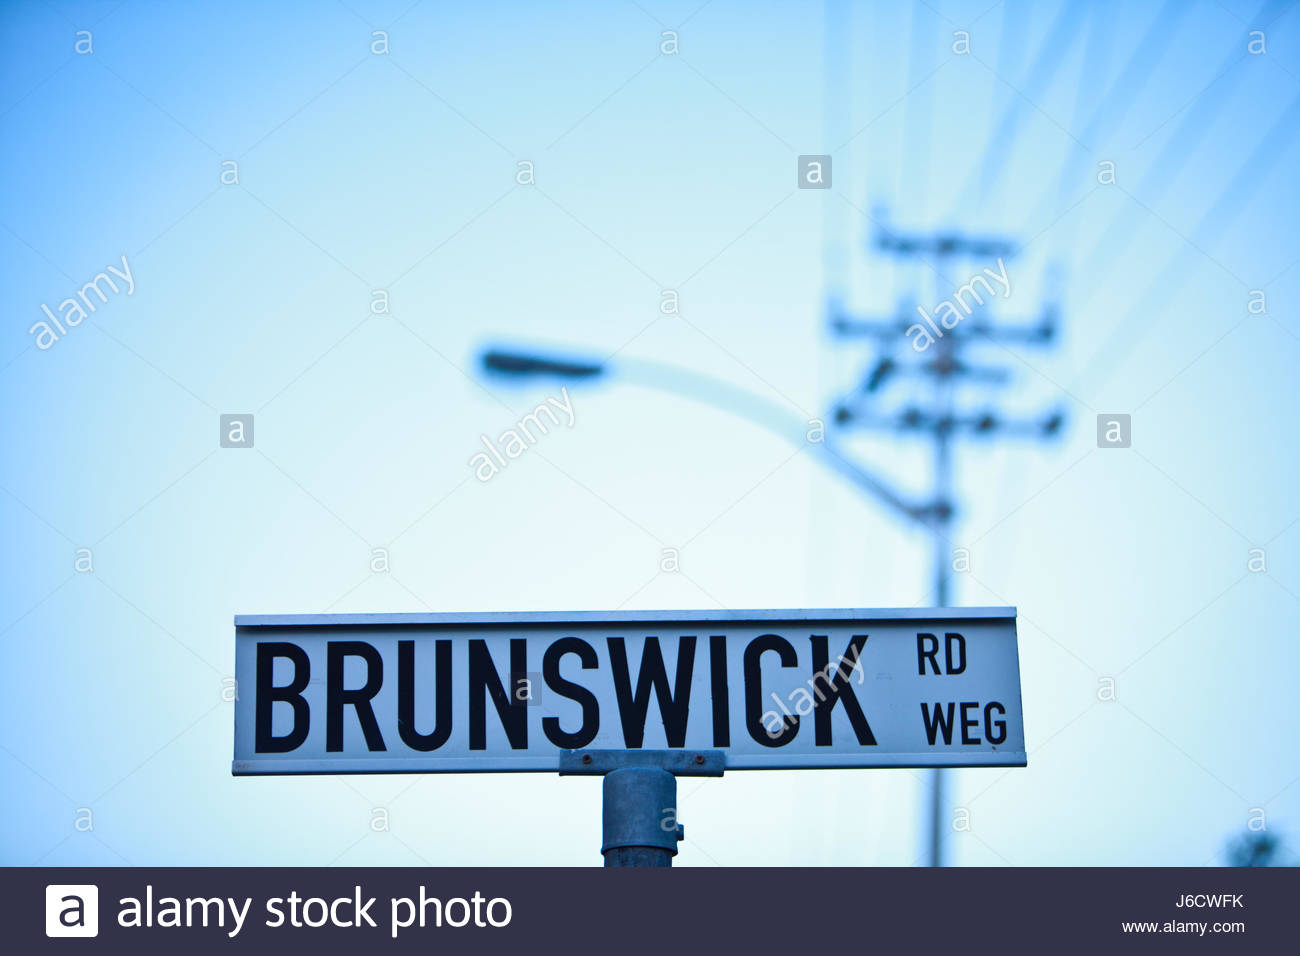 Street sign in Cape Town, South Africa - Stock Image